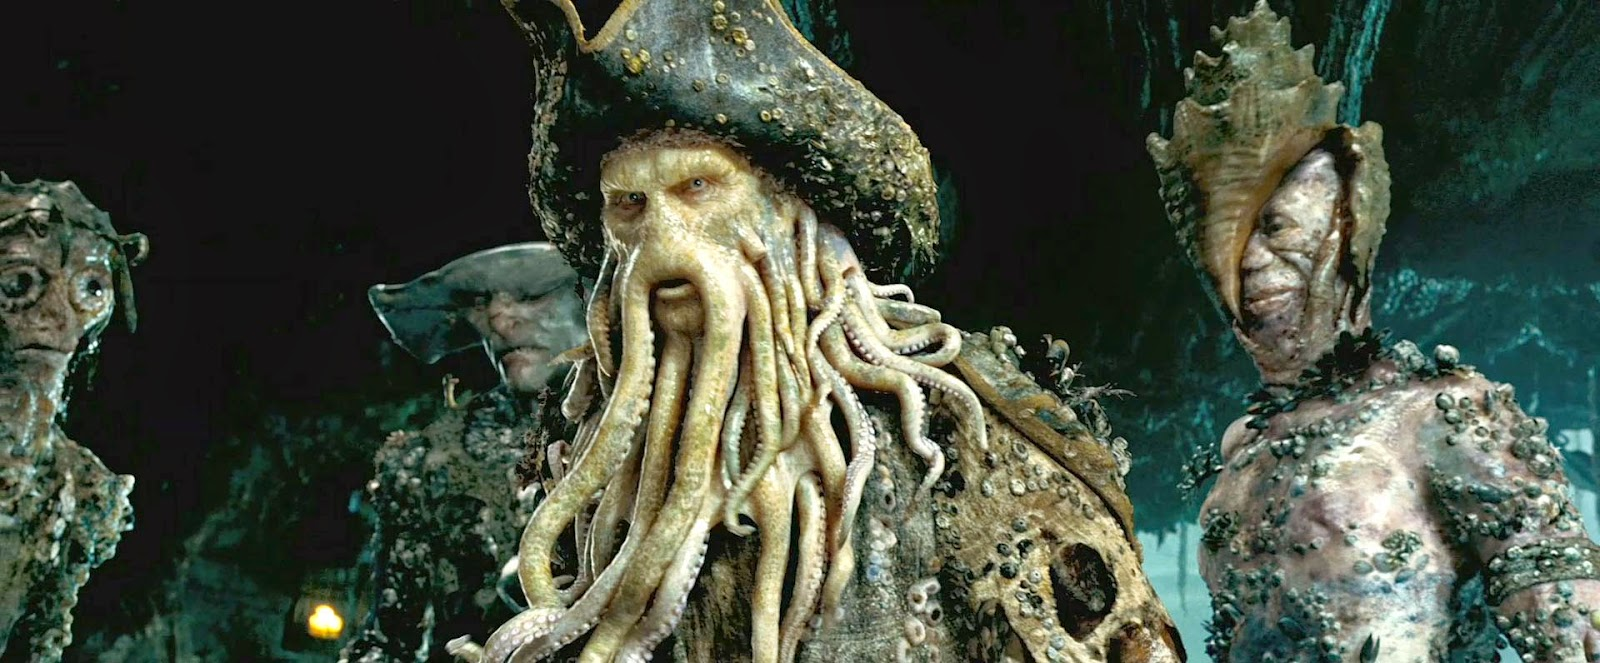 Davy jones(Pirates Of The Caribbean):